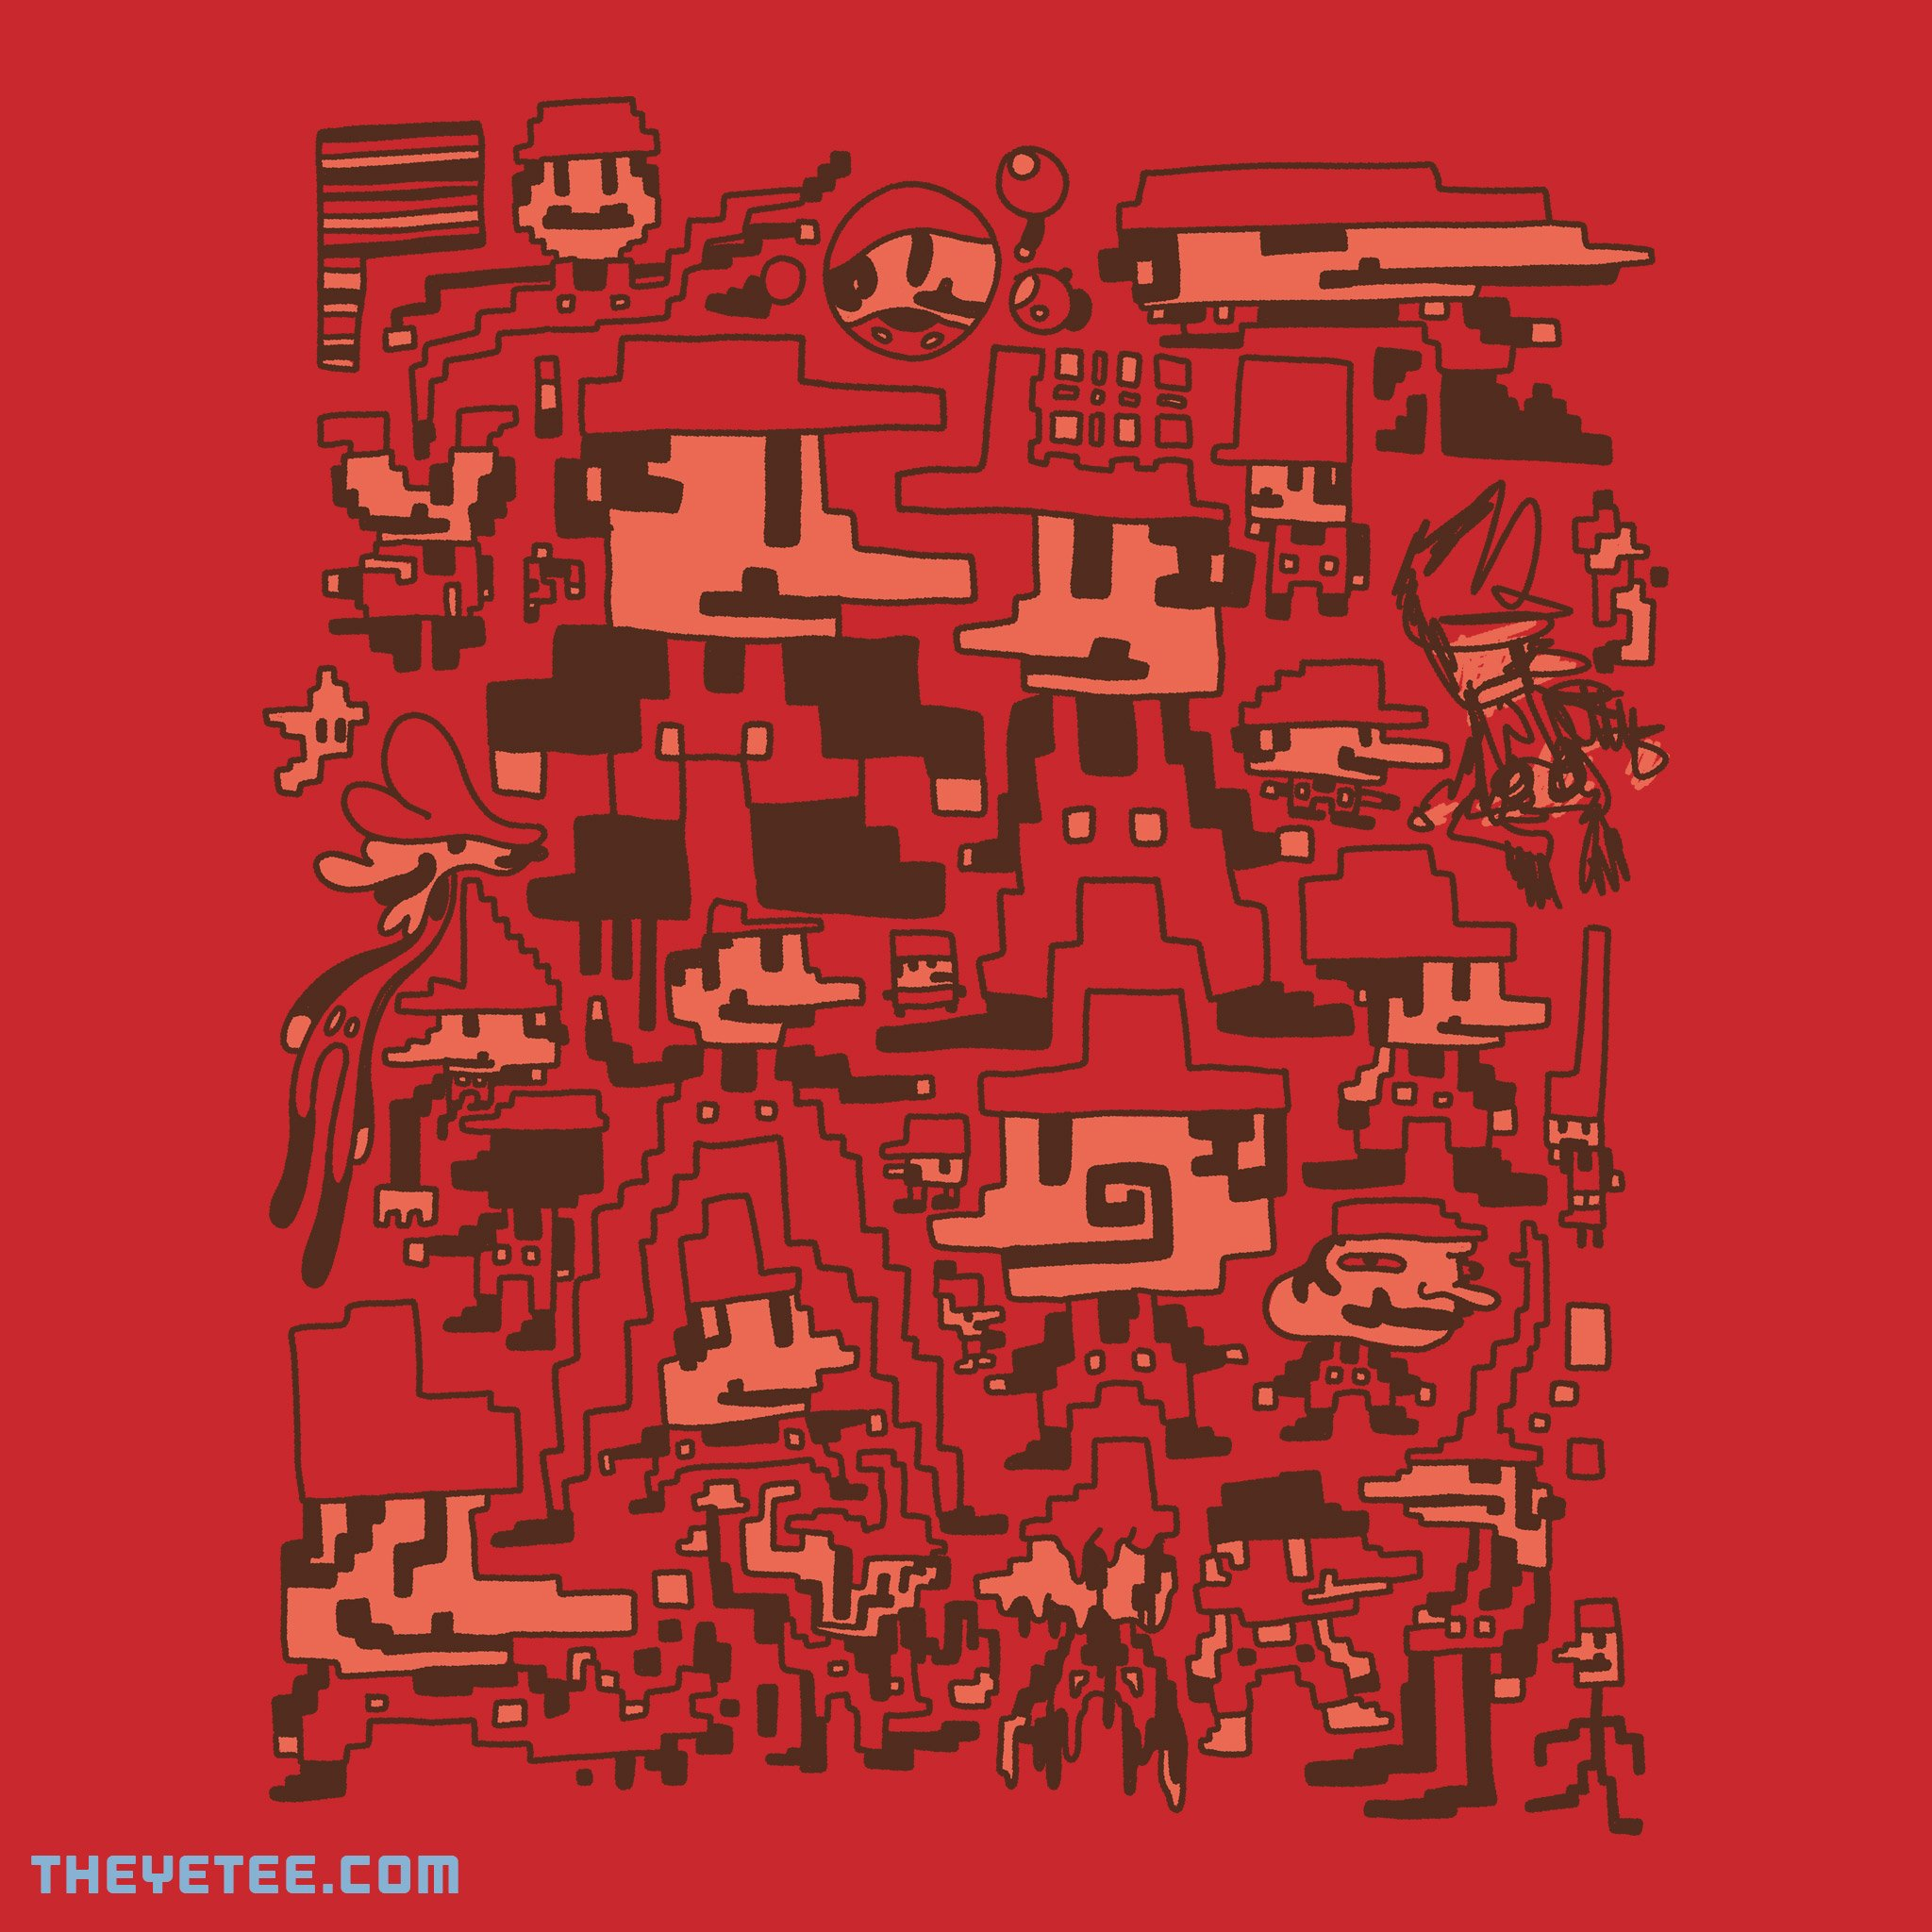 The Yetee: Failed Experiments In Plumbing No. 21885-21916